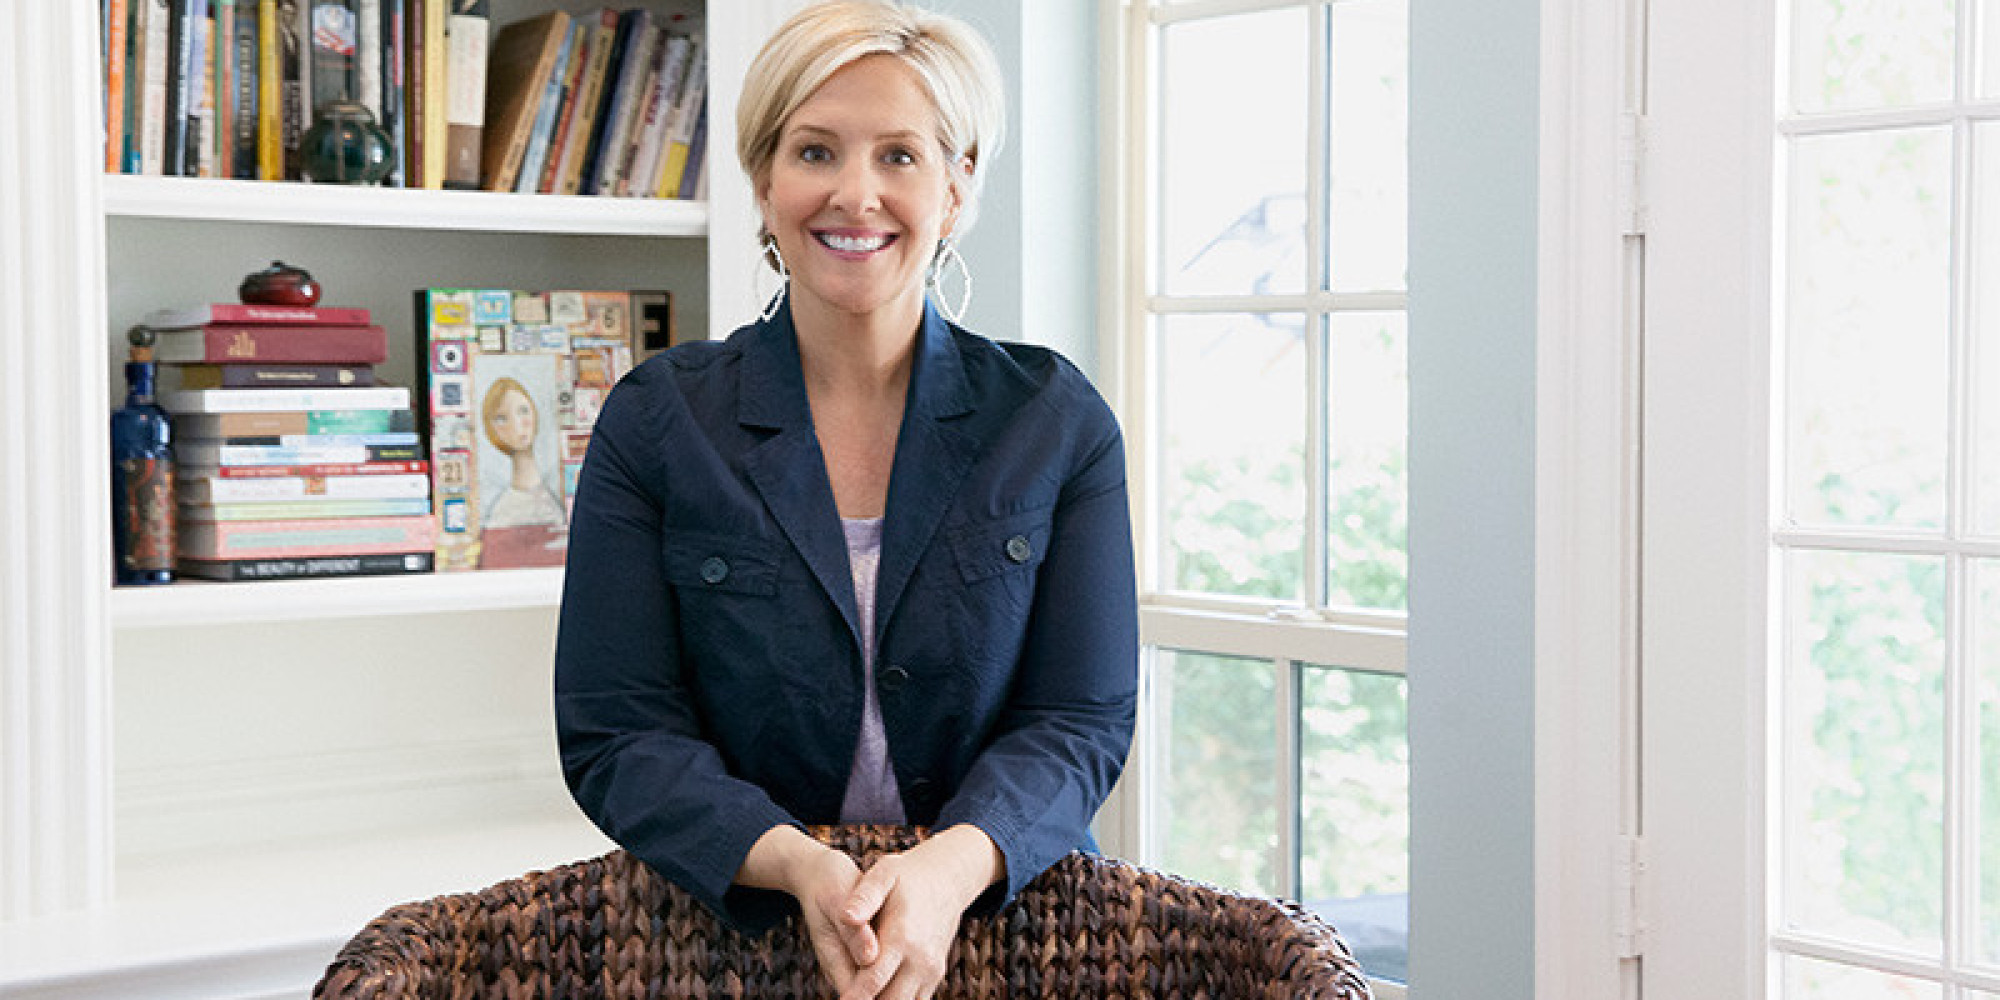 brene brown relationship advice